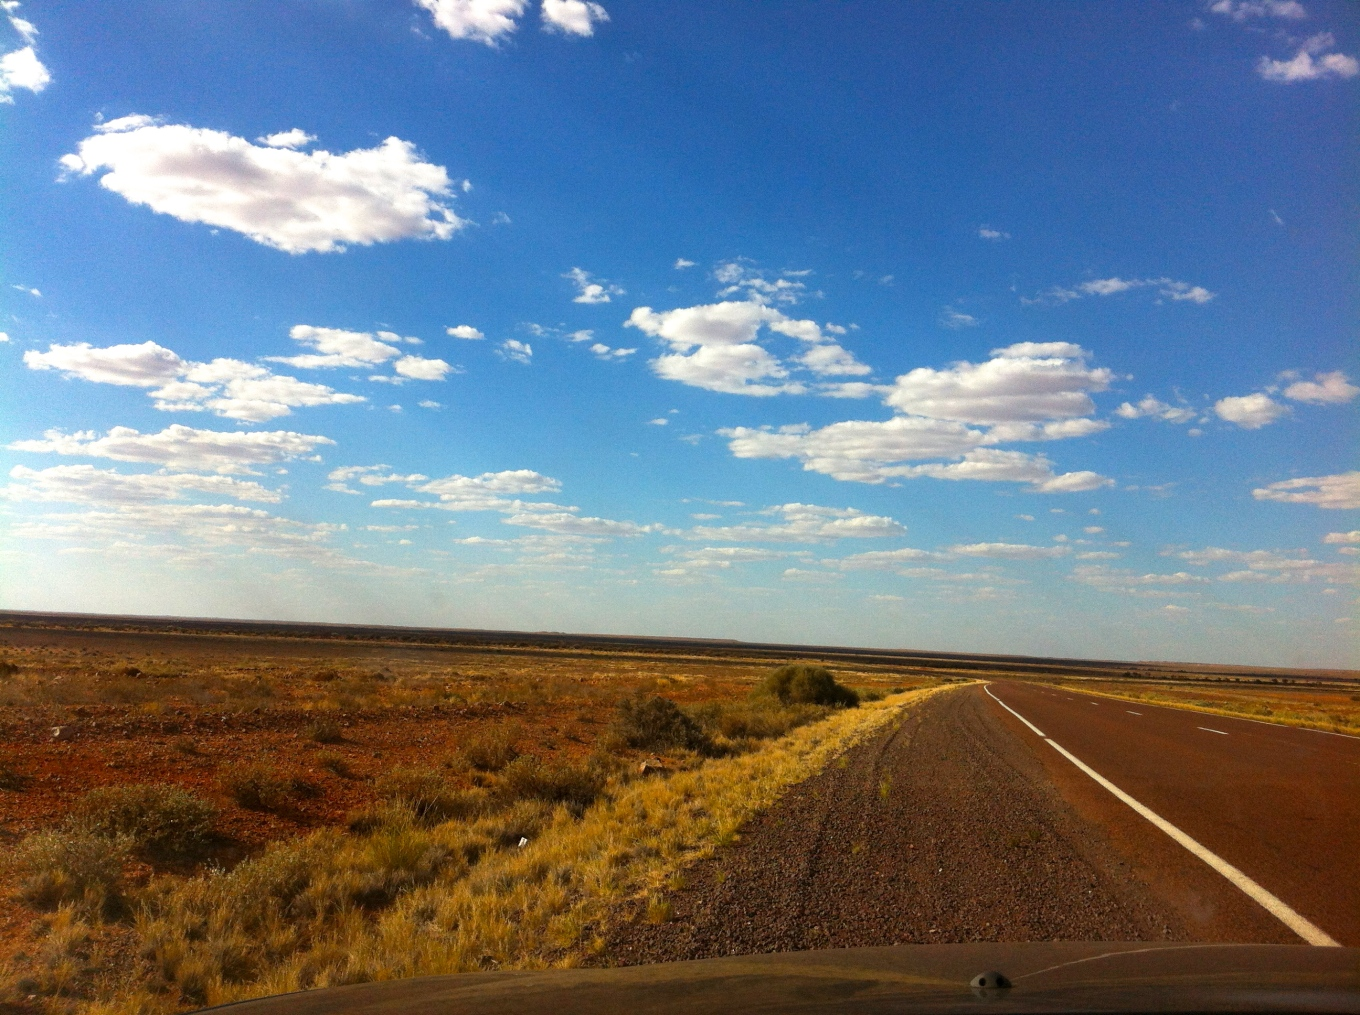 Outback nothingness